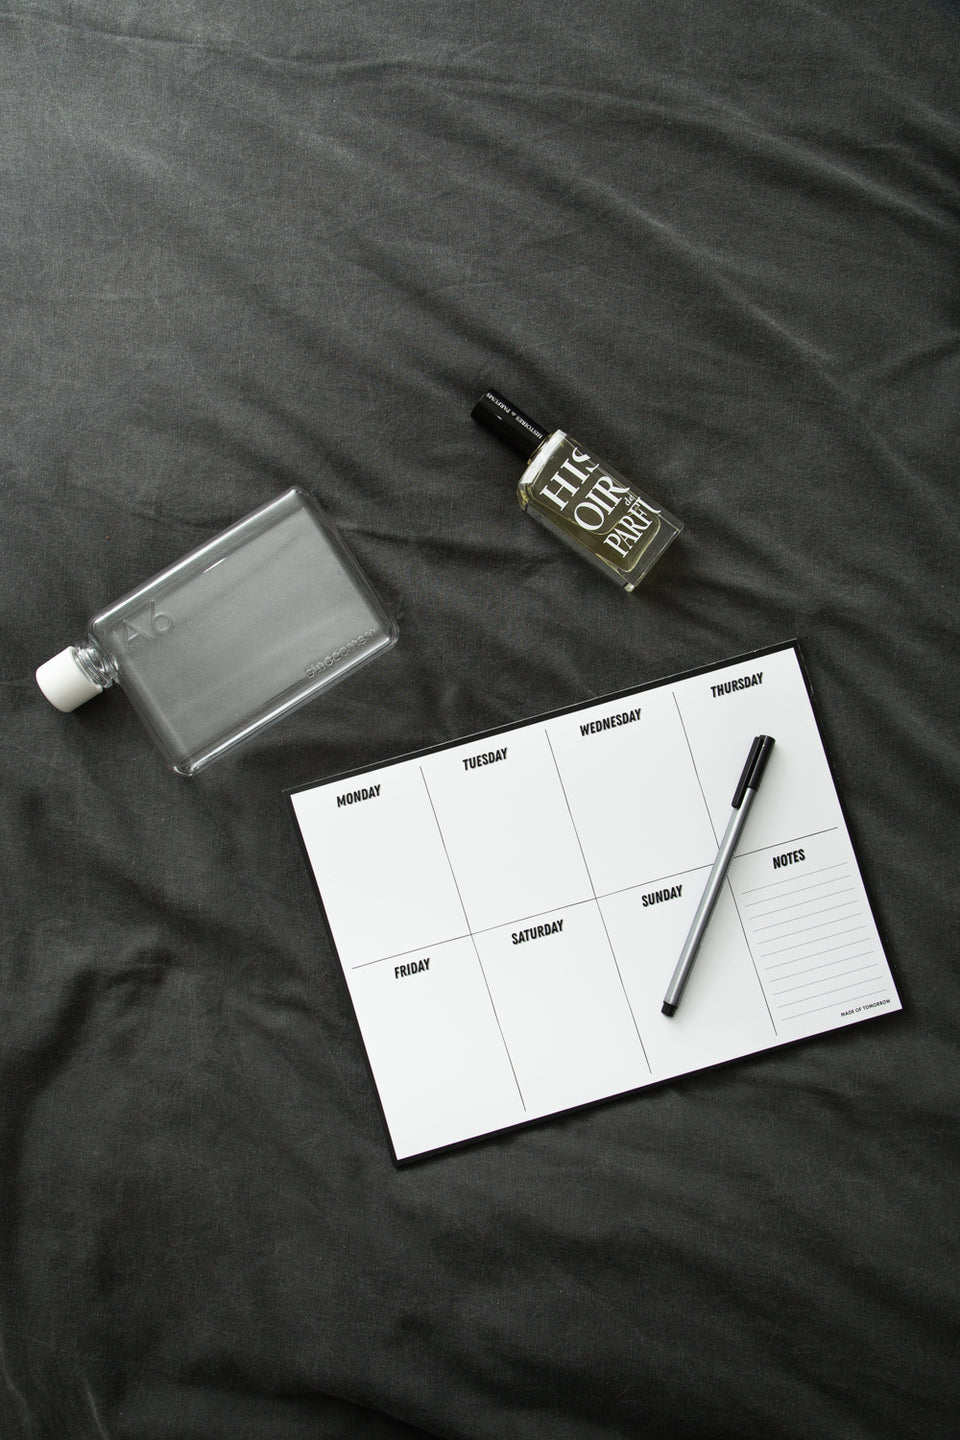 Stationery Range